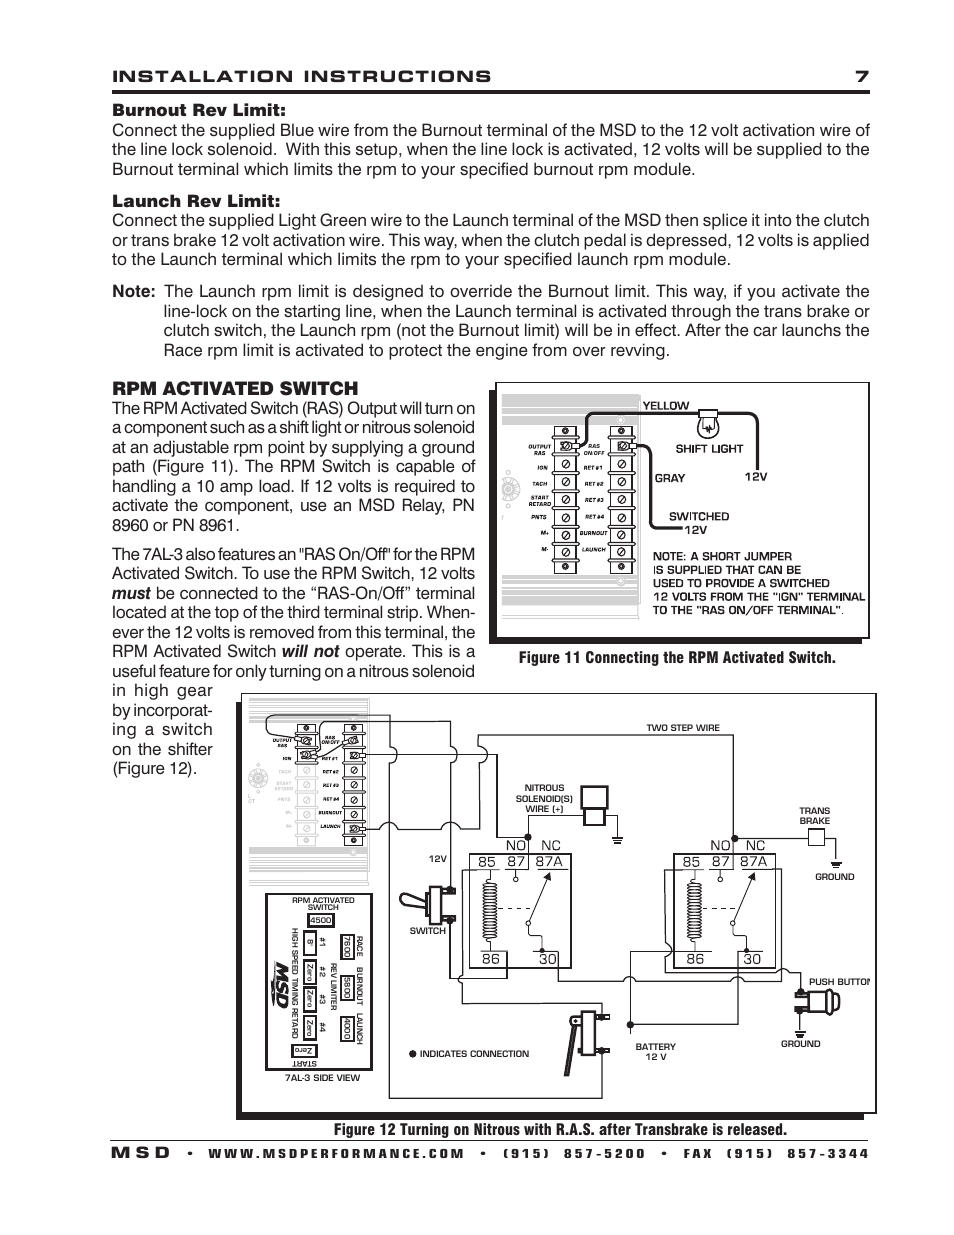 msd 7330 7al 3 ignition control installation page7?resize\=665%2C861 msd 8350 wiring diagram ford wiring diagrams msd 8350 wiring diagram at reclaimingppi.co